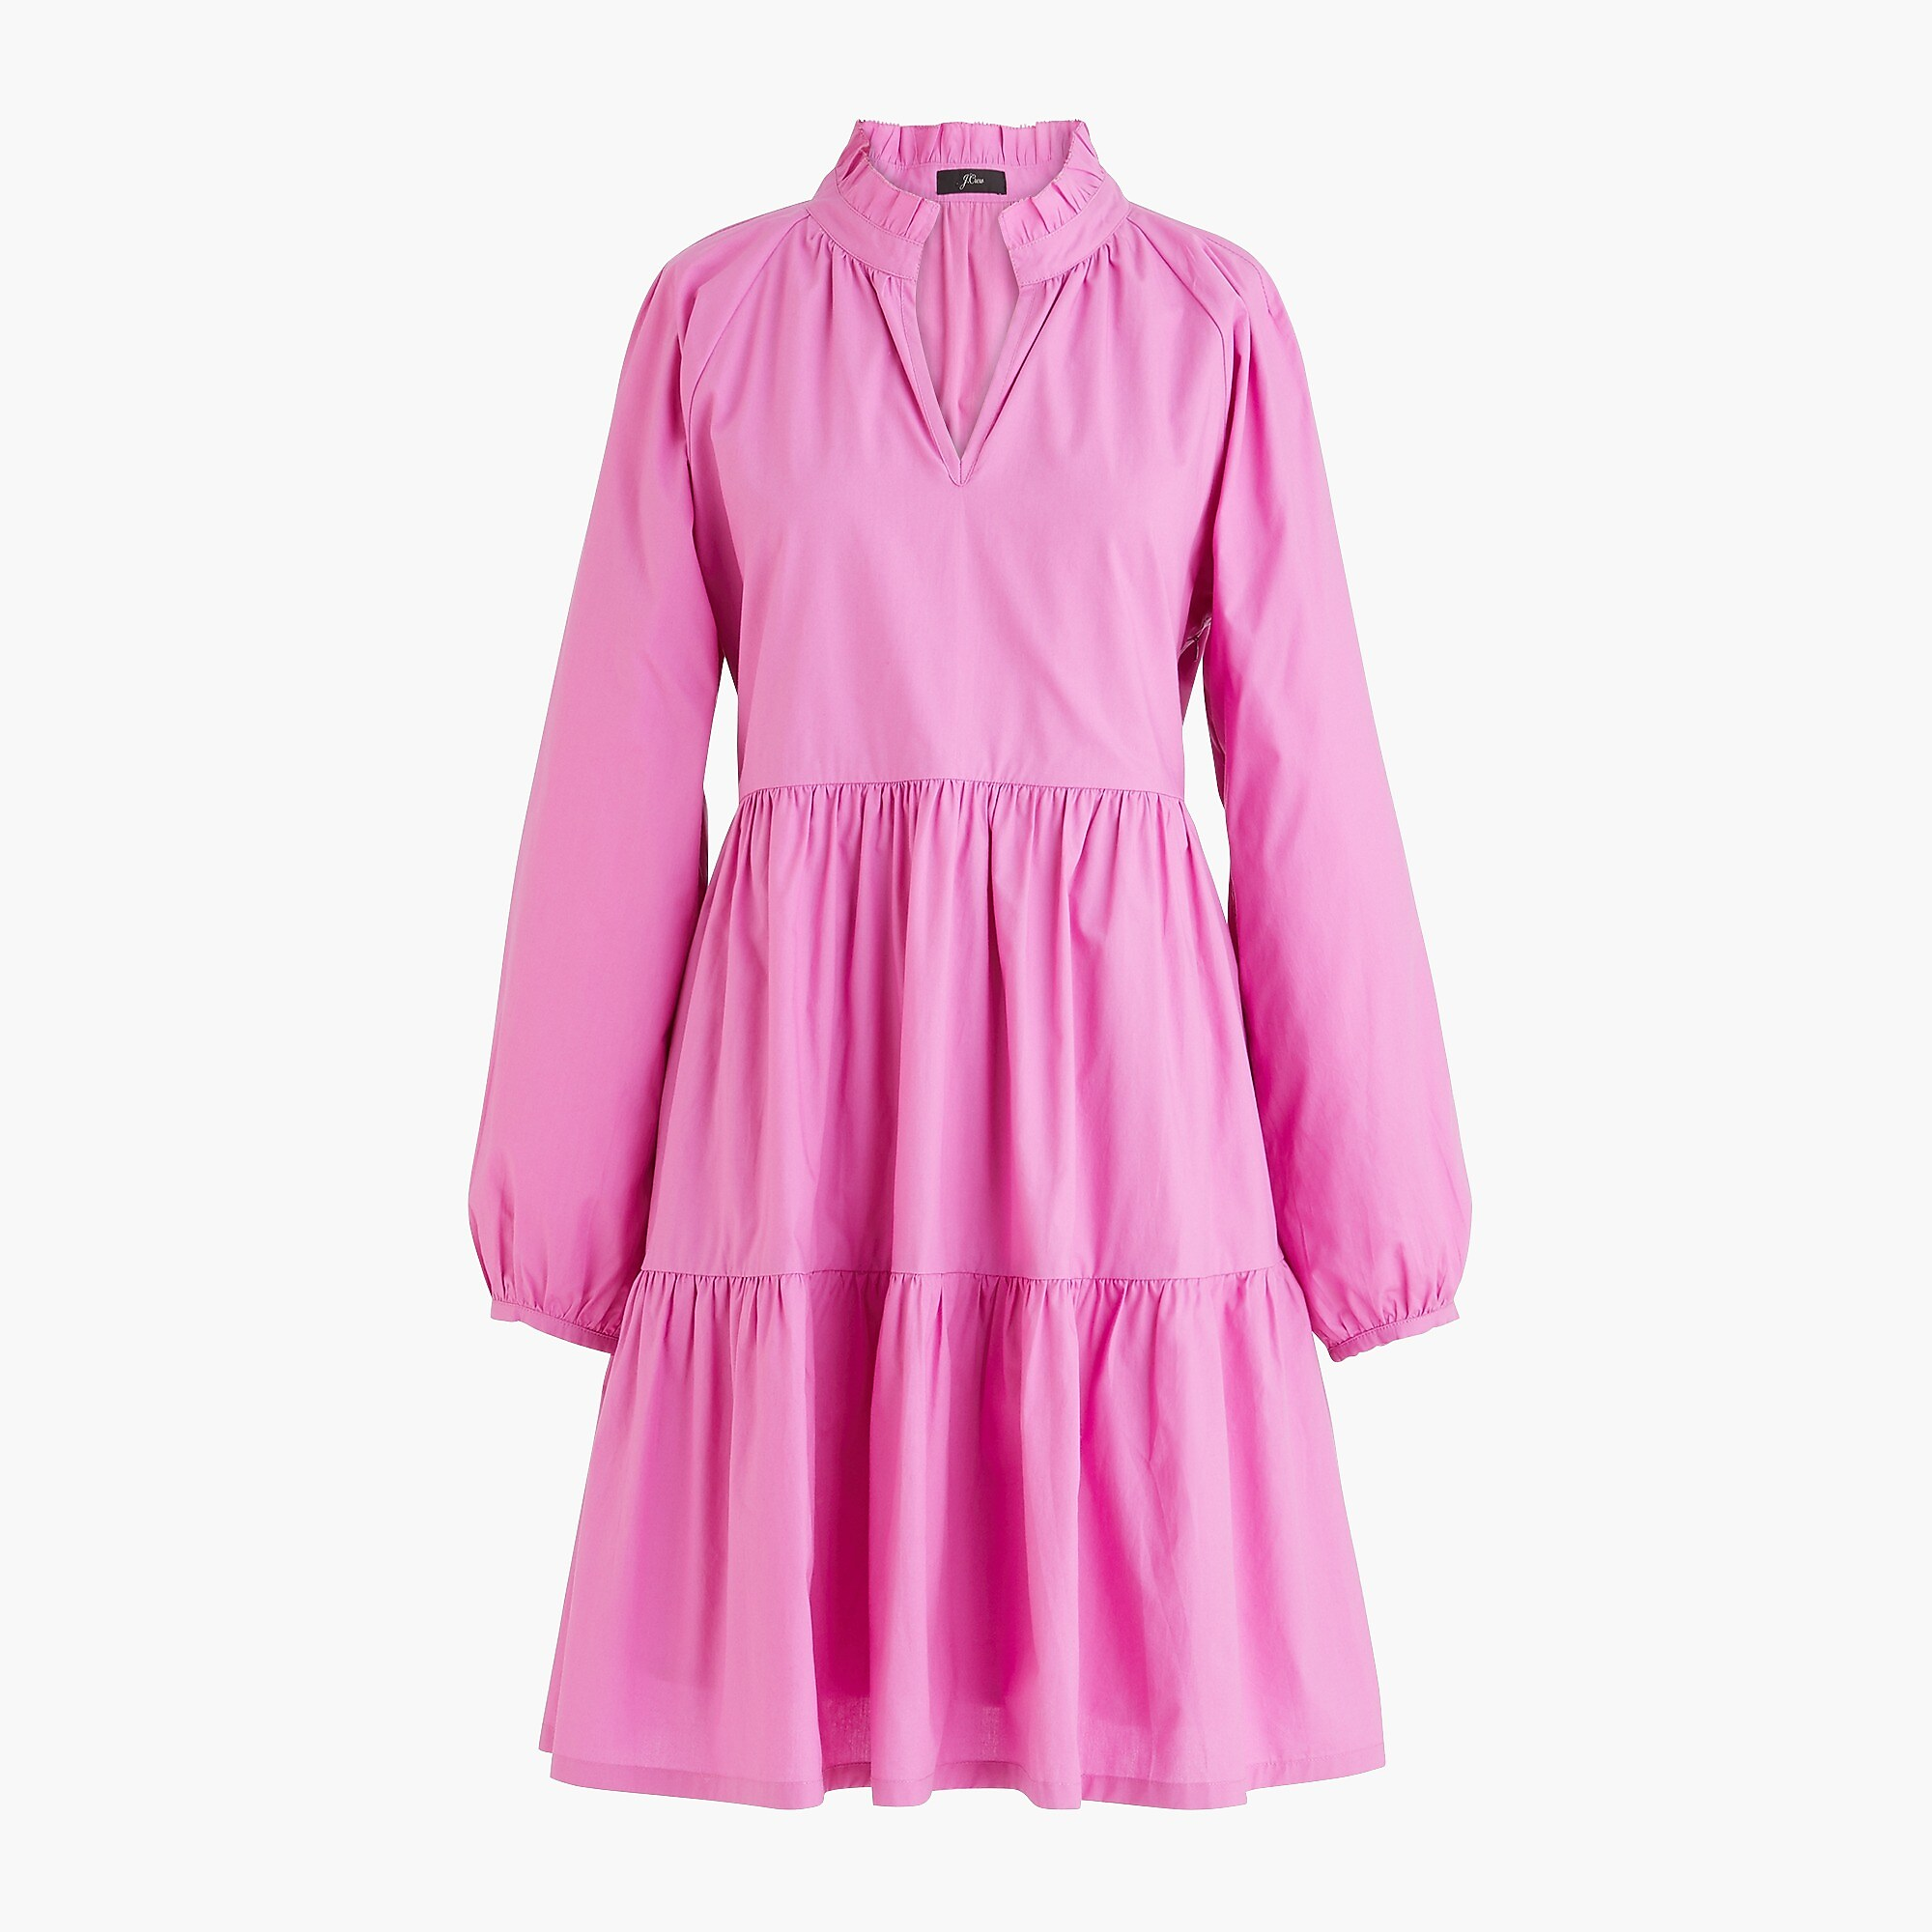 Tiered popover dress, pink